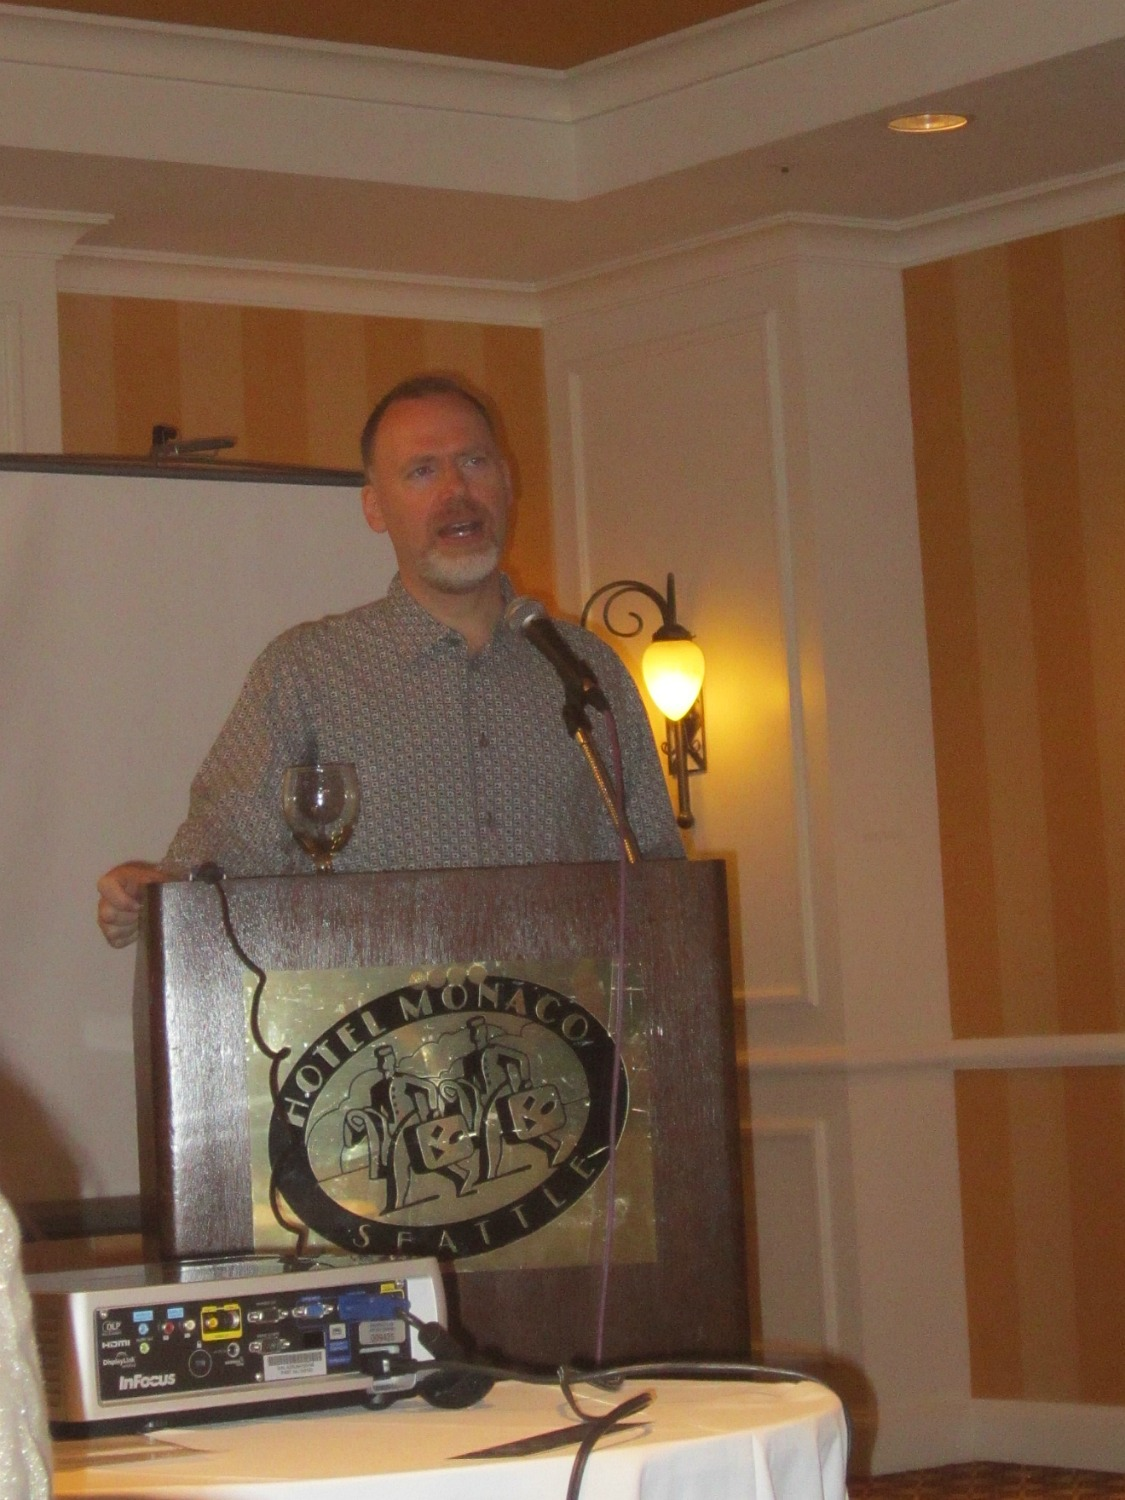 When I Heard That Scott Westerfeld Was Going To Give The Keynote For  Kidlitcon Seattle, I Was Excited Because He's A Big Name In Ya And An  Interactive